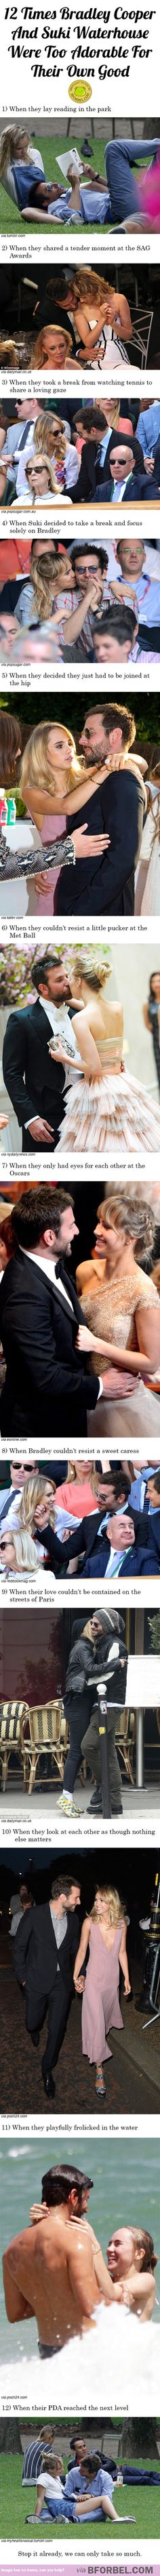 12 Times Bradley Cooper And Suki Waterhouse Were Too Adorable For Their Own Good…